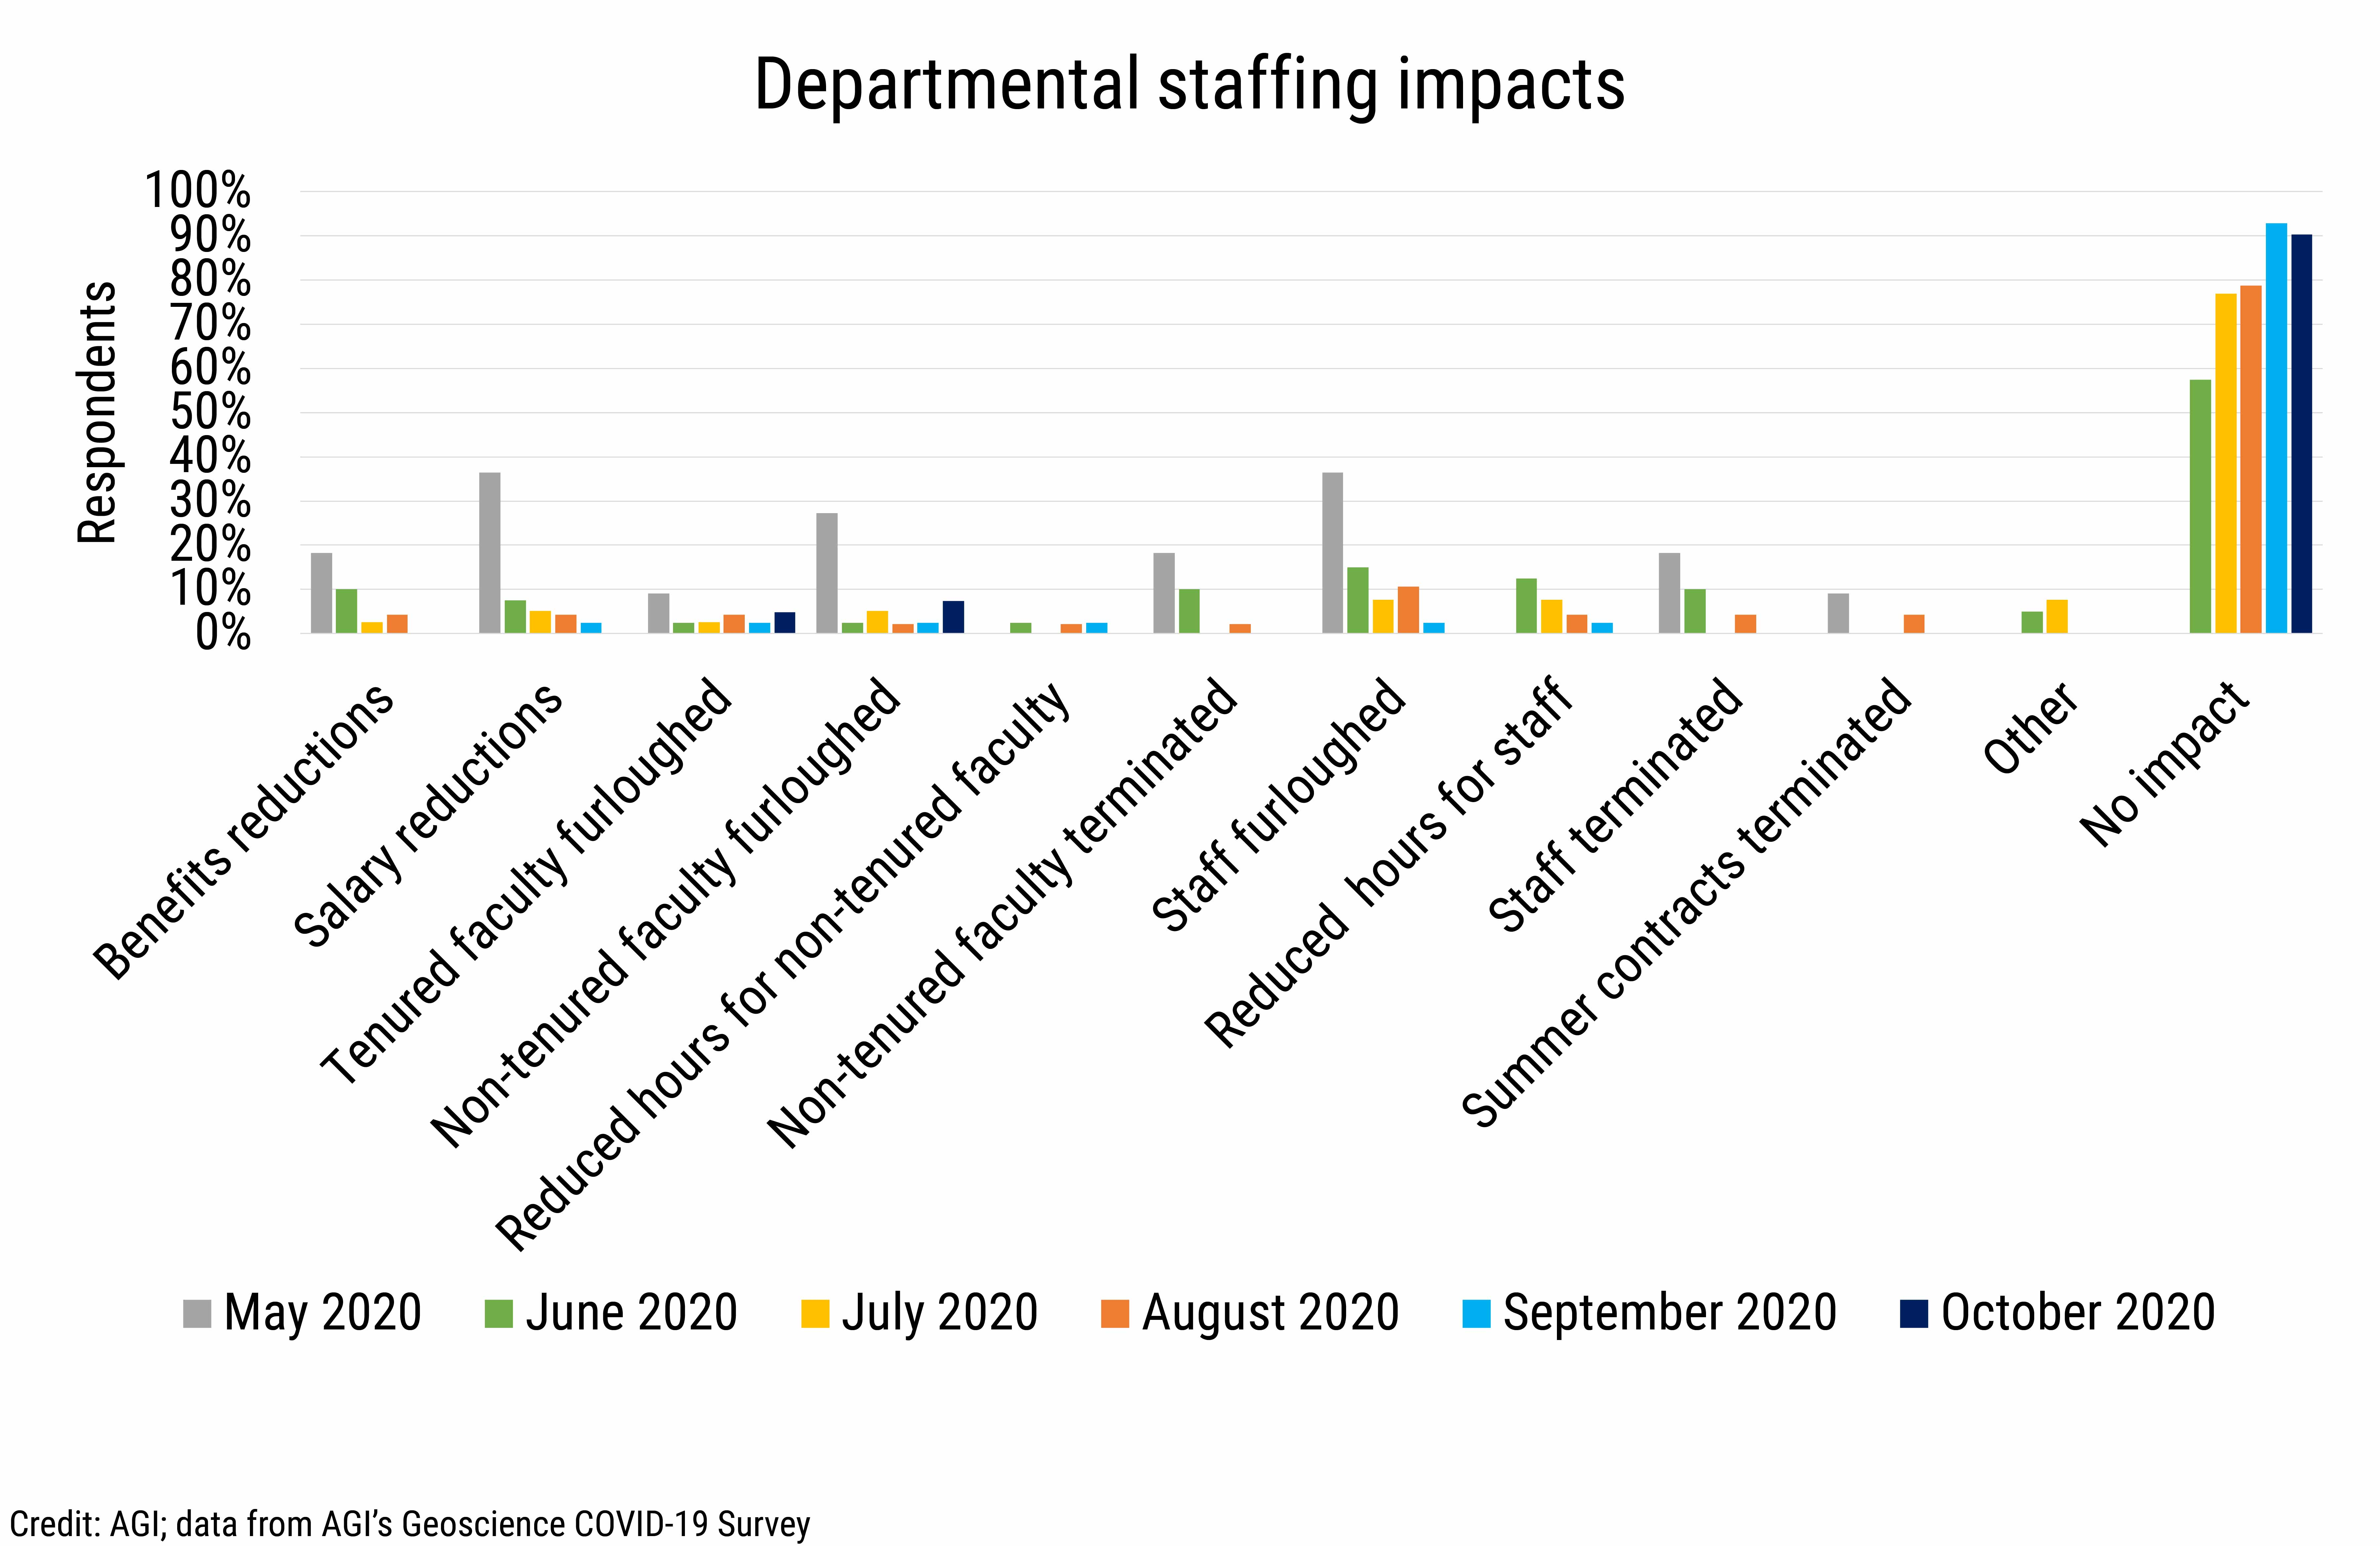 DB_2020-028 chart 02:  Department staffing impacts (Credit: AGI; data from AGI's Geoscience COVID-19 Survey)